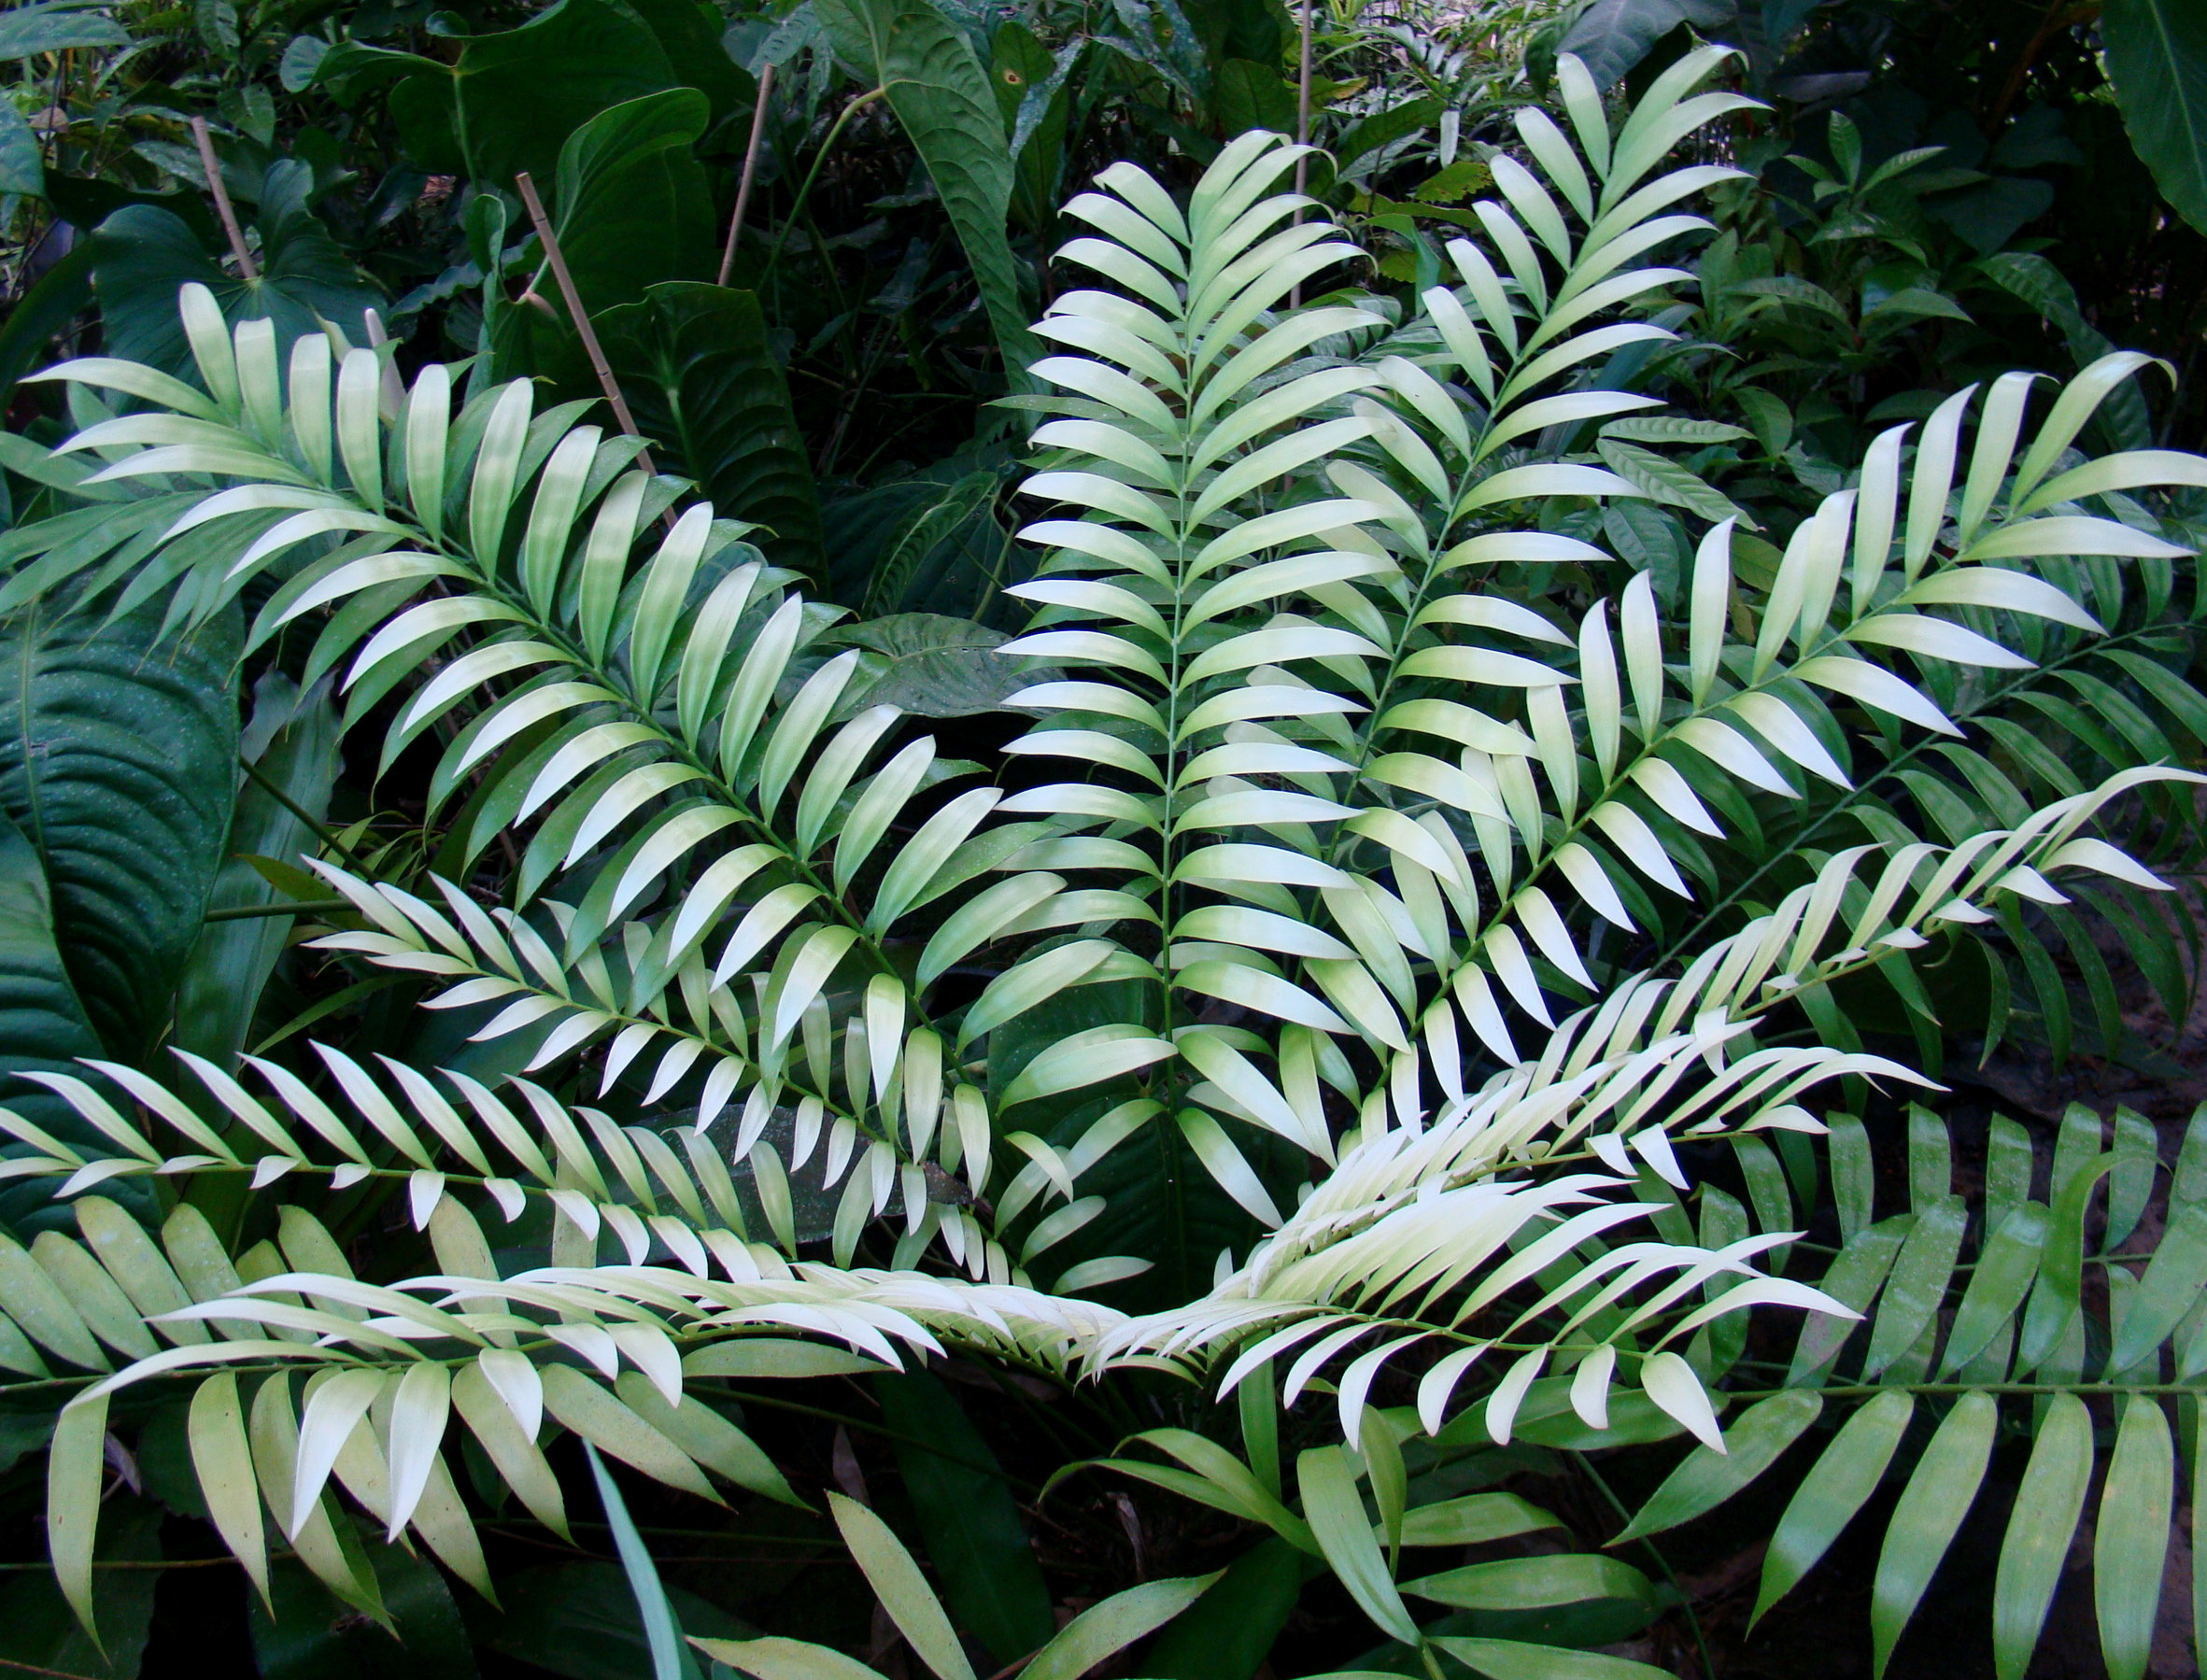 """"""" El Blanco """". The snow white, newly emergent leaves that are diagnostic for most populations of  Zamia stevensonii . Cultivated mature plant in private collection in northeastern Queensland, Australia. Image: C. Hall and A. Dearden."""